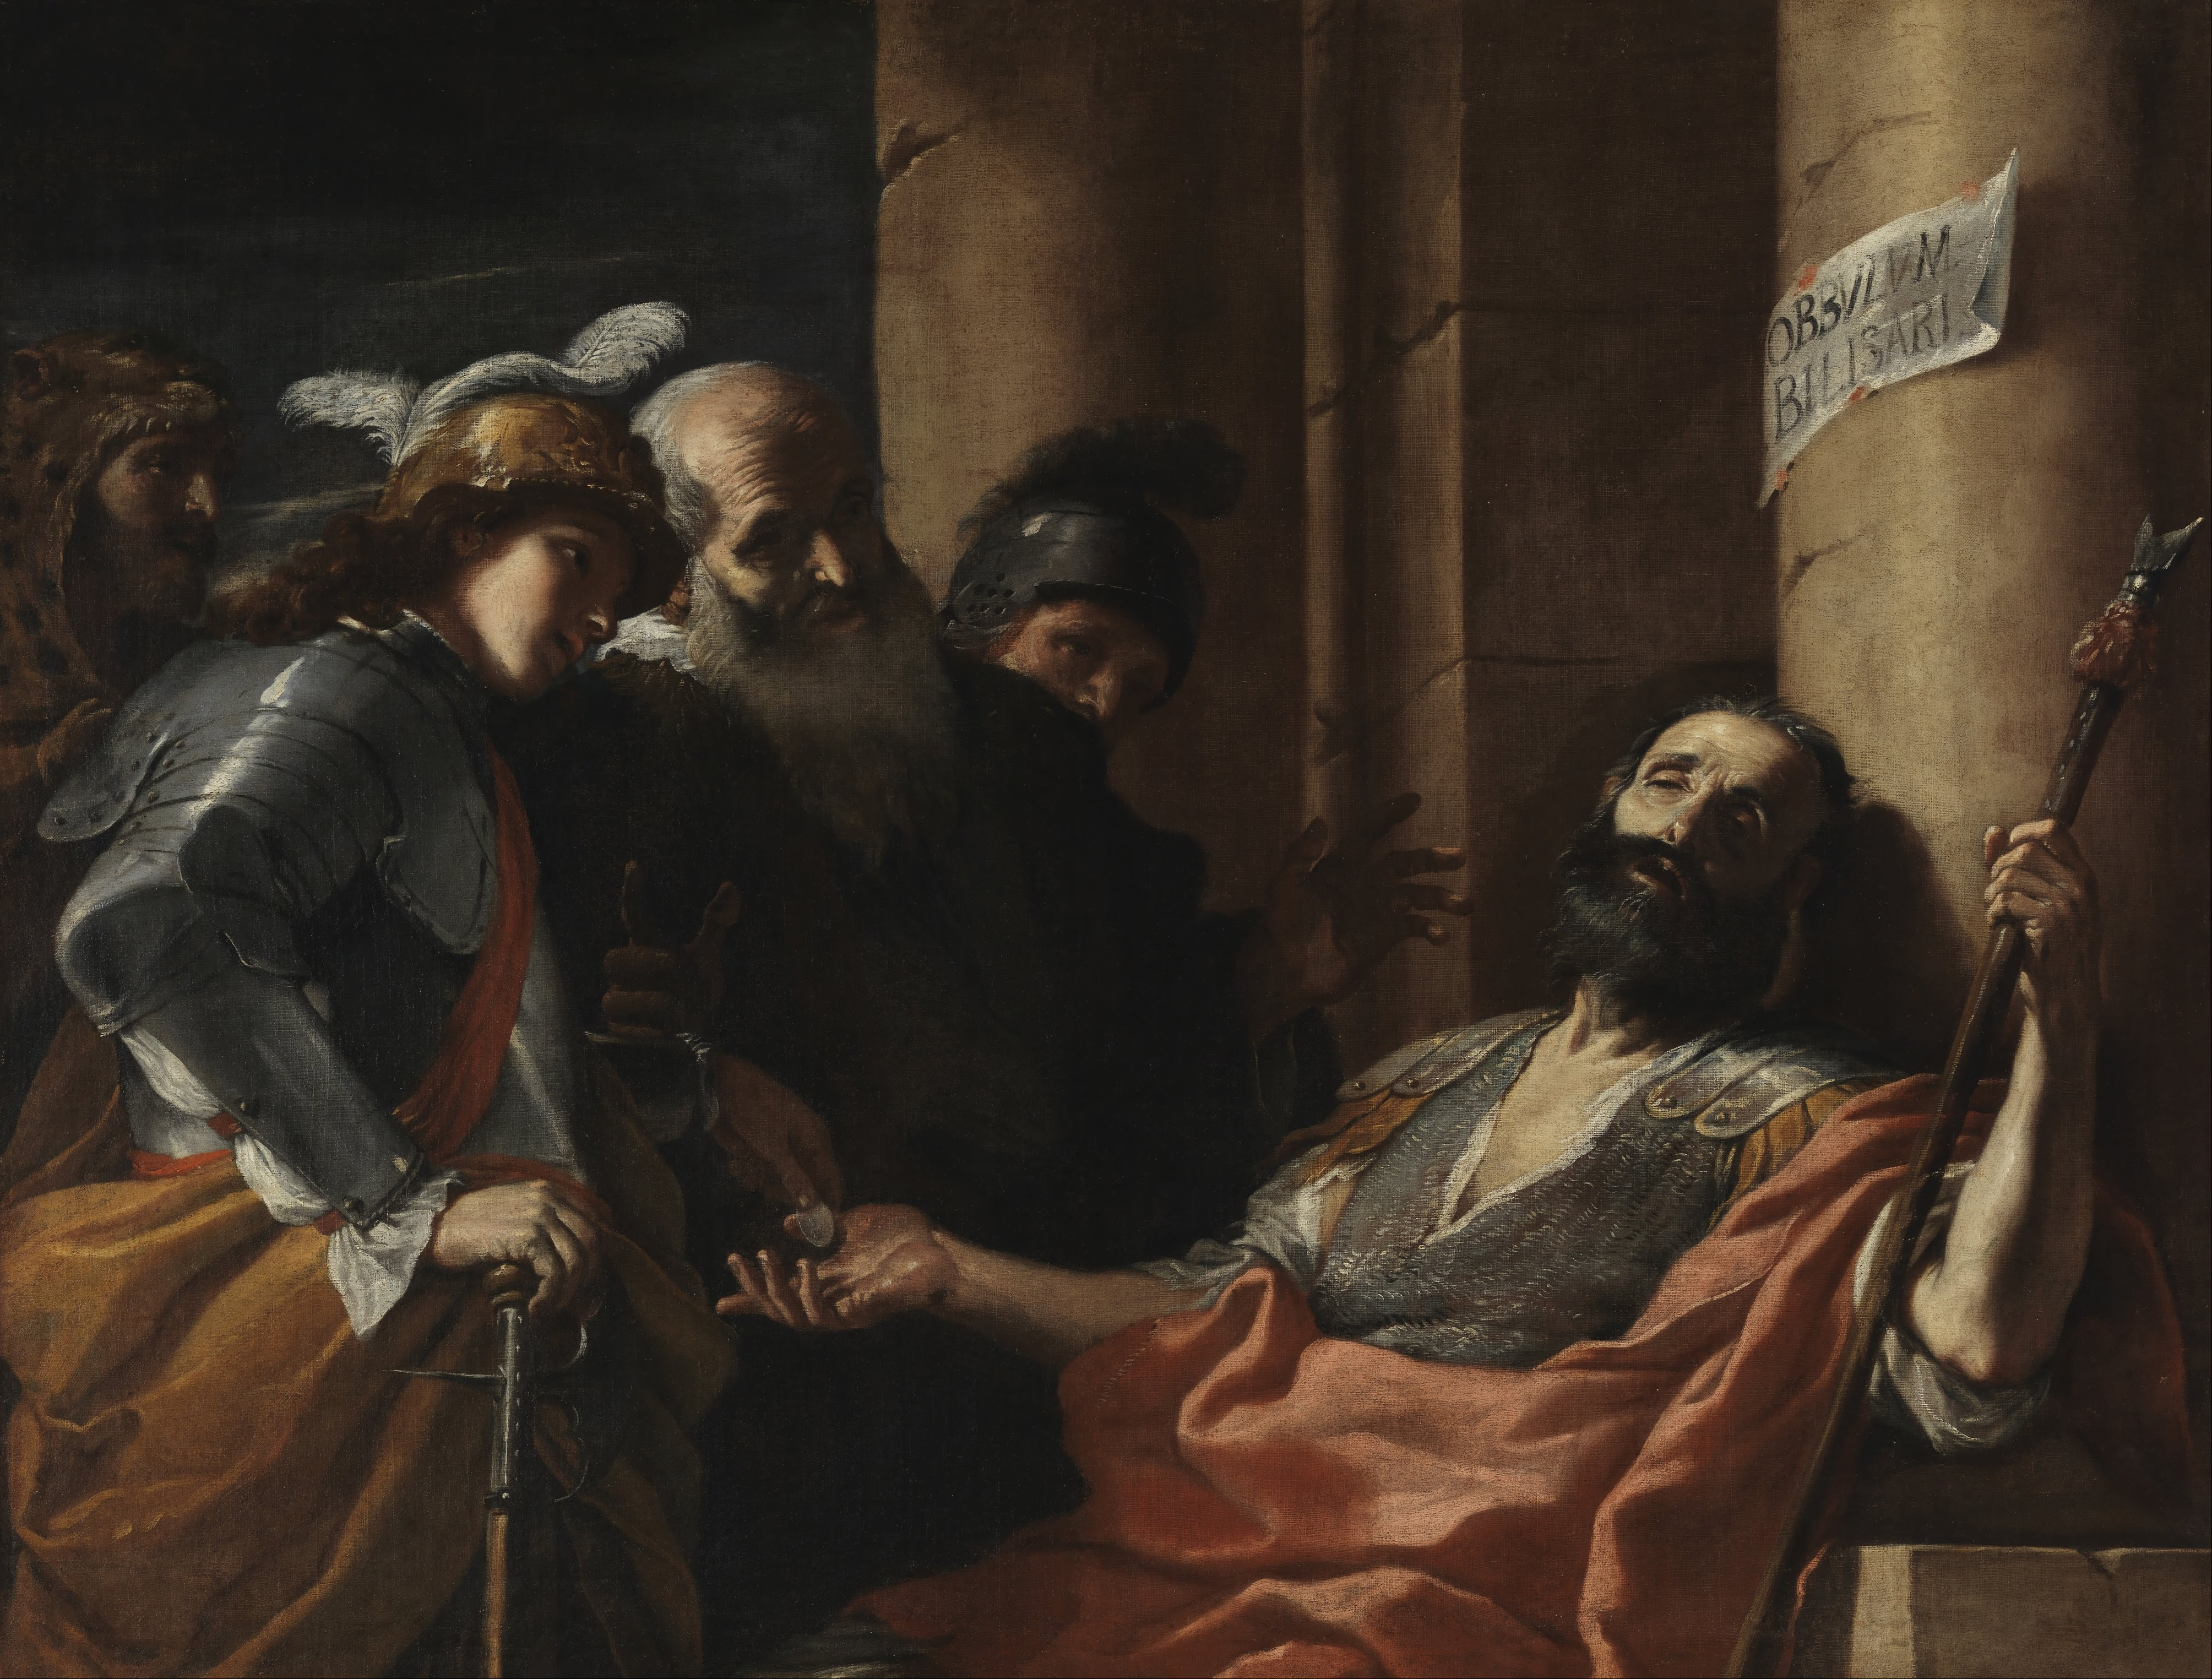 Mattia Preti - Belisarius Receiving Alms - Google Art Project